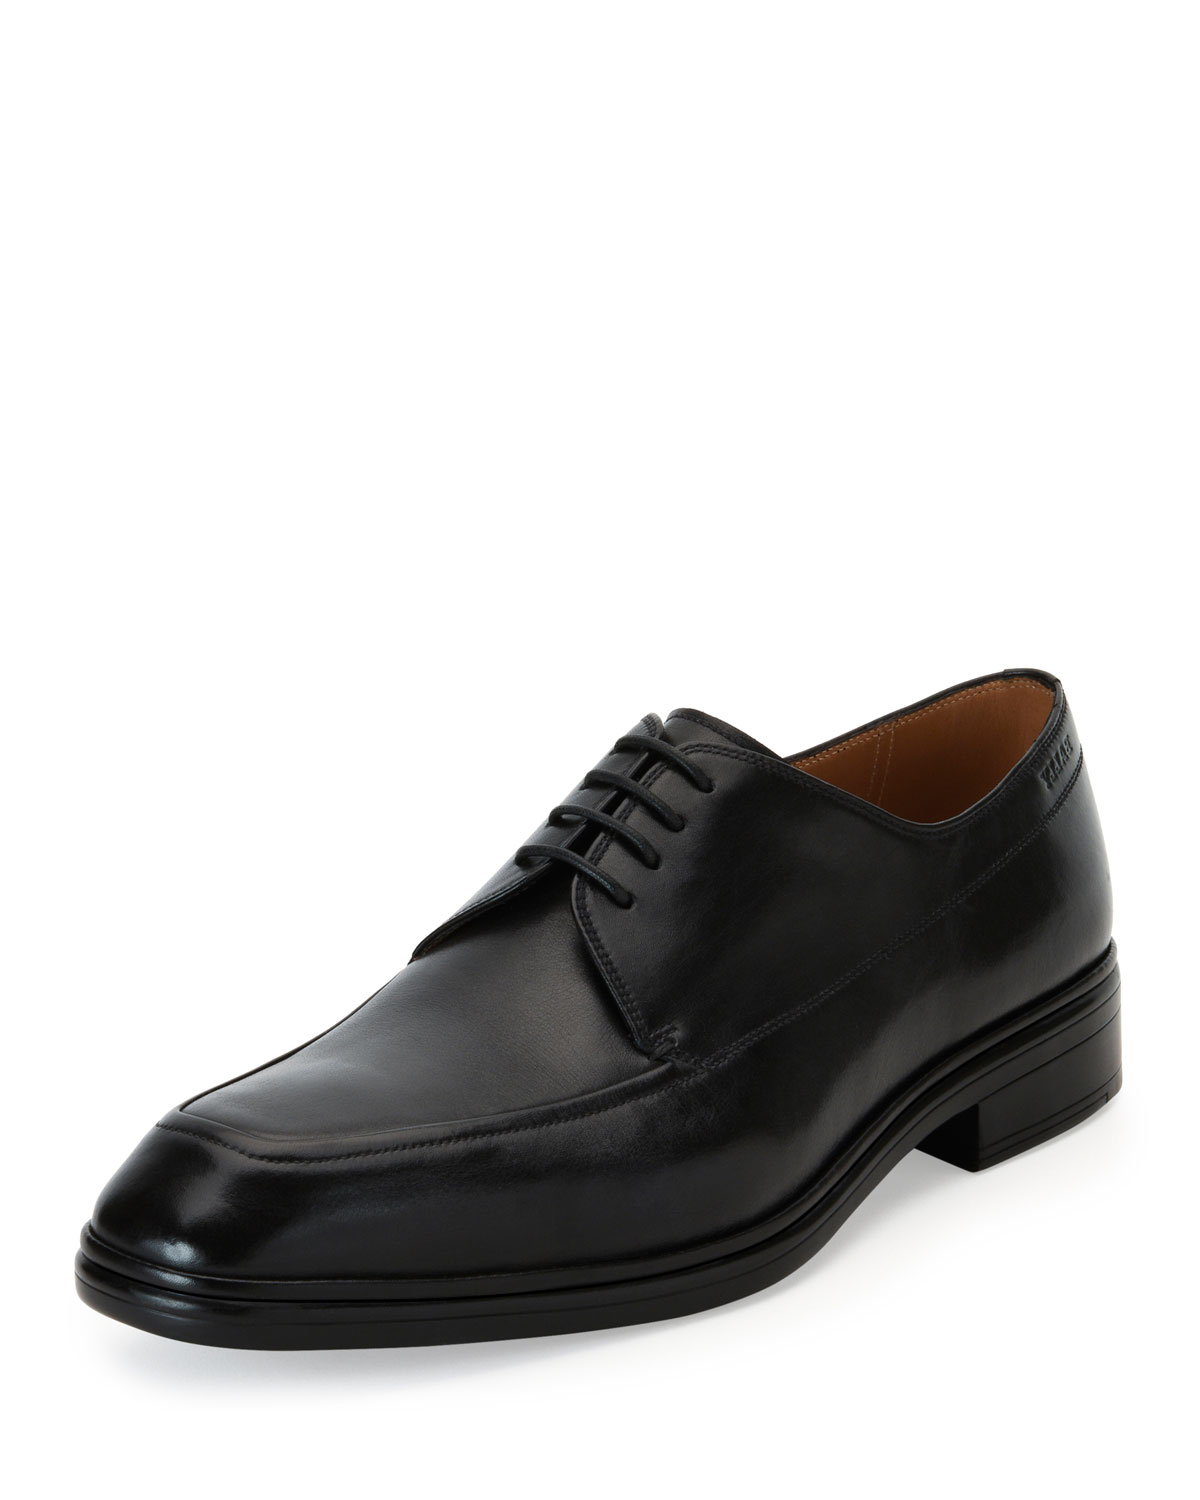 86586bba09 Bally Neill Calf Leather Lace-Up Shoe